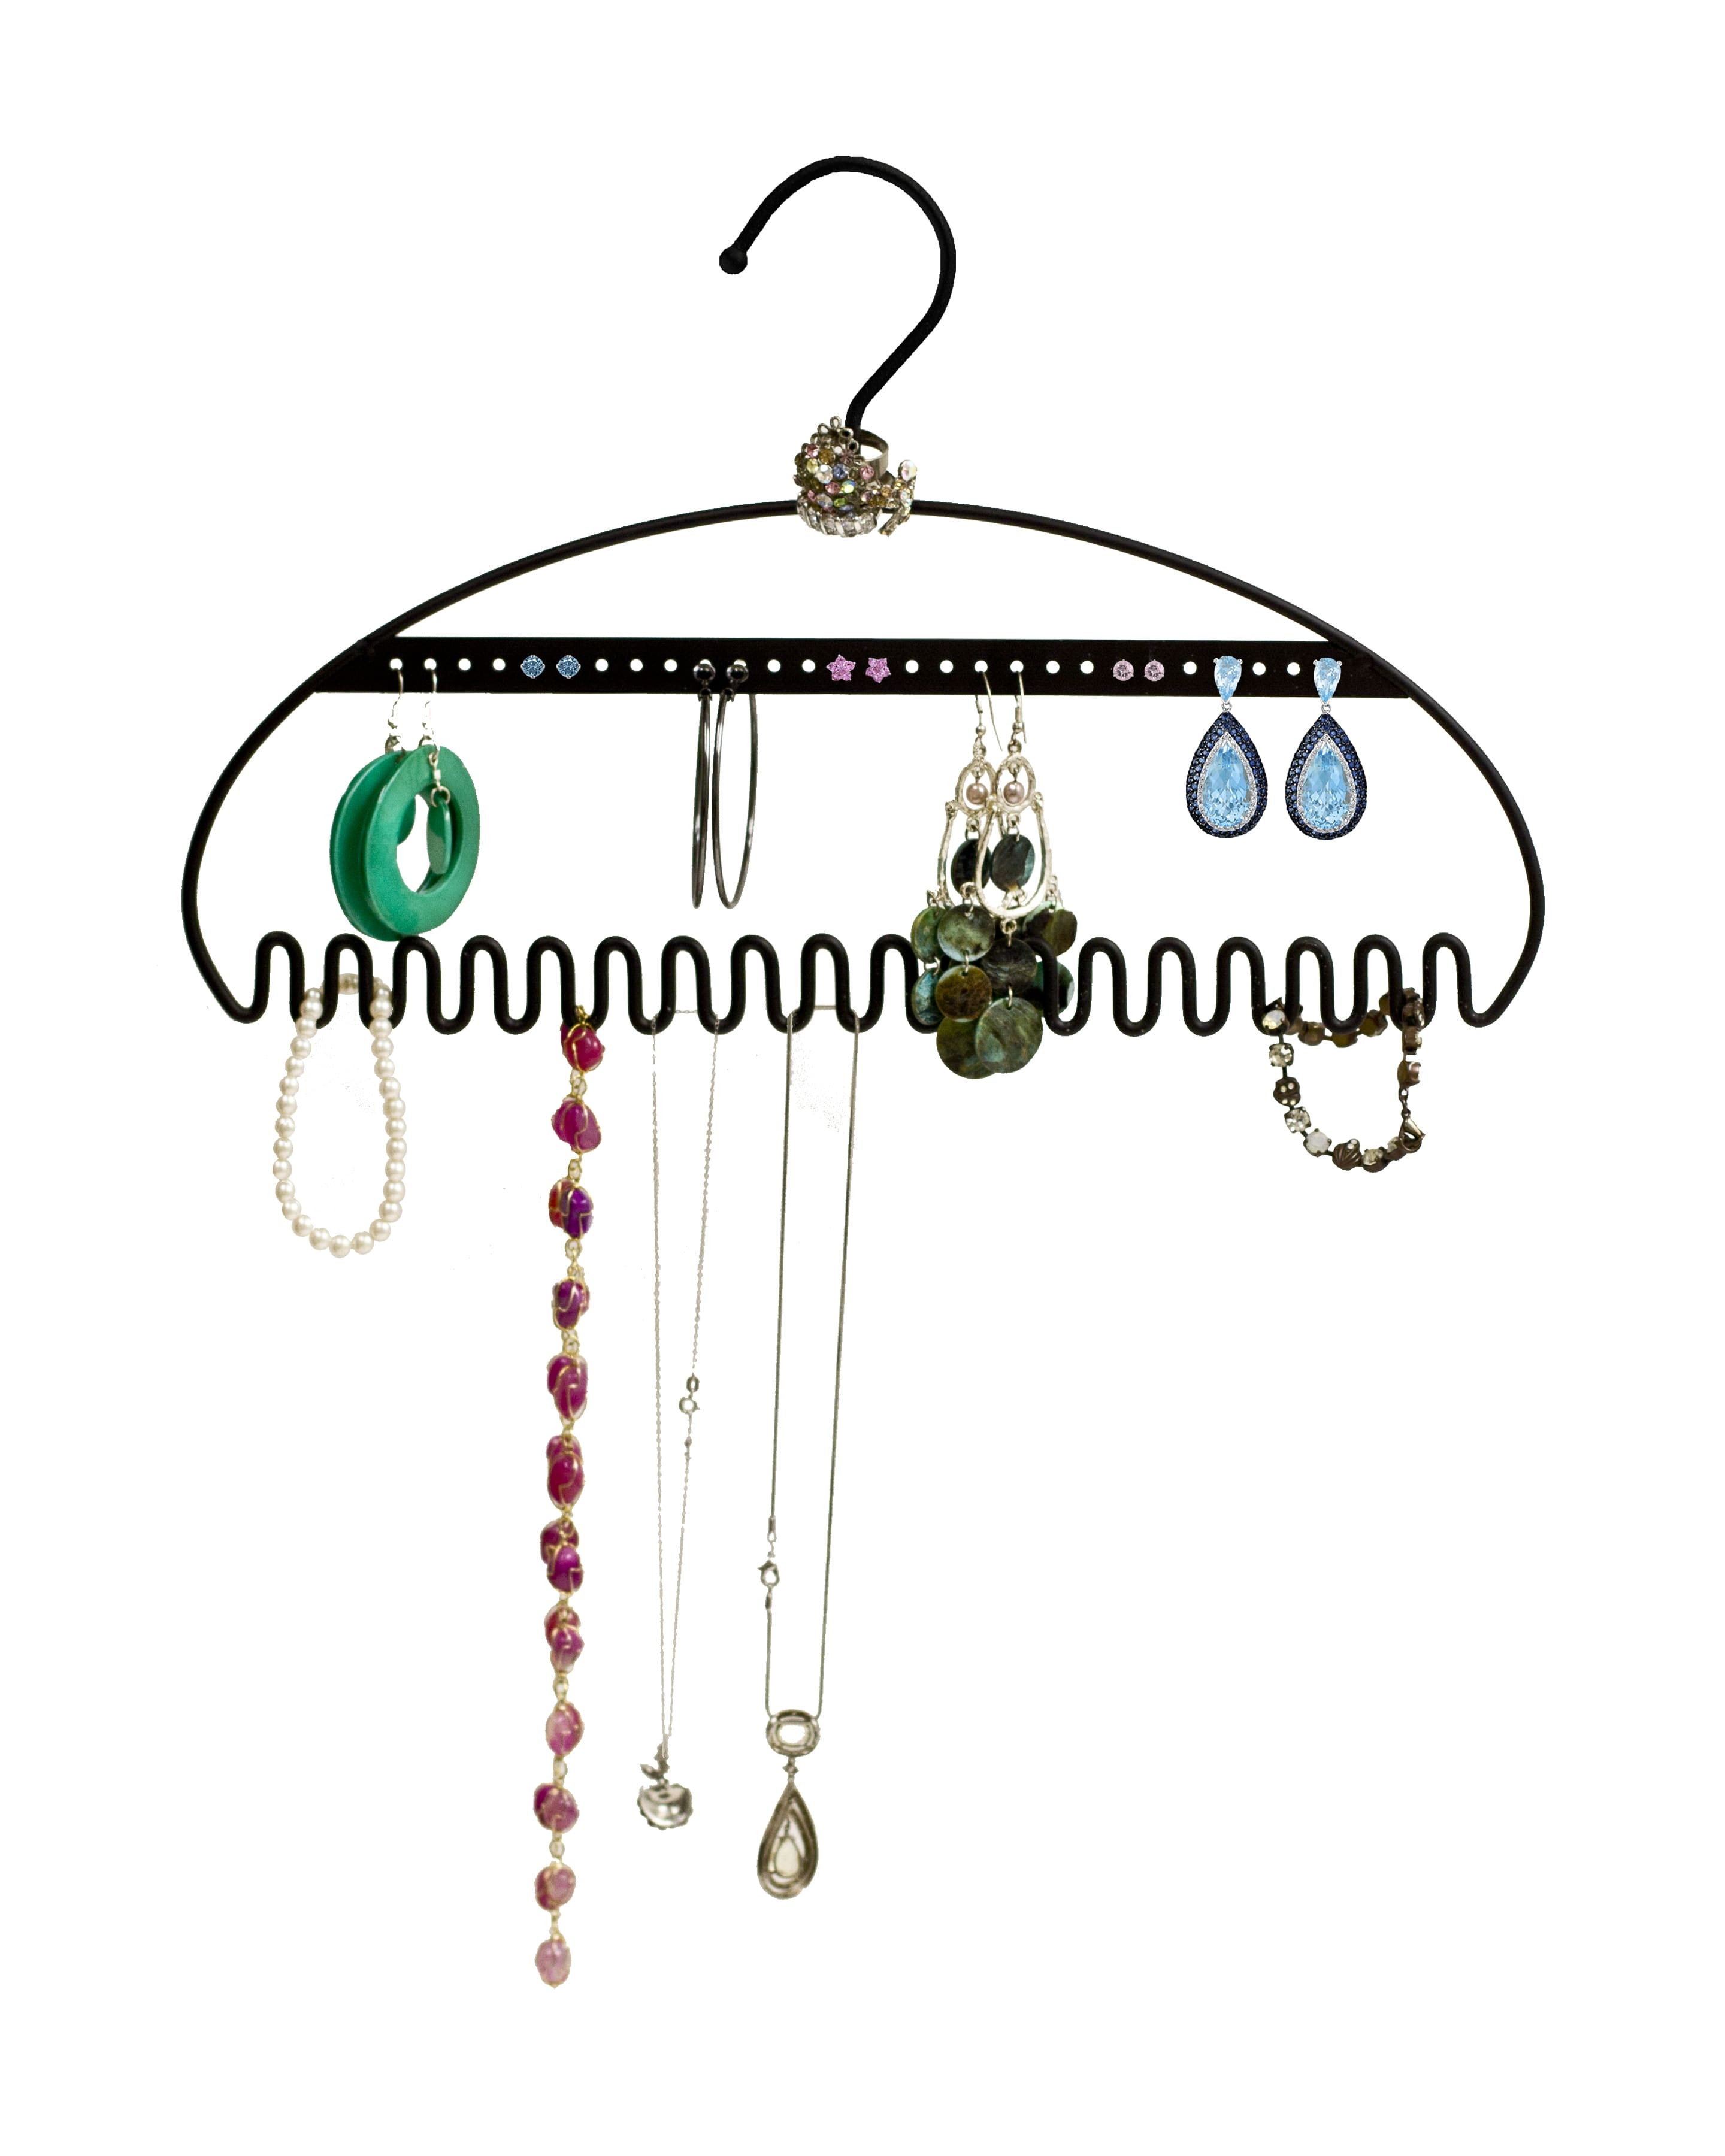 Hangit jewelry and accessory organizer - 2 pack for $5.95 w/code + free prime shipping